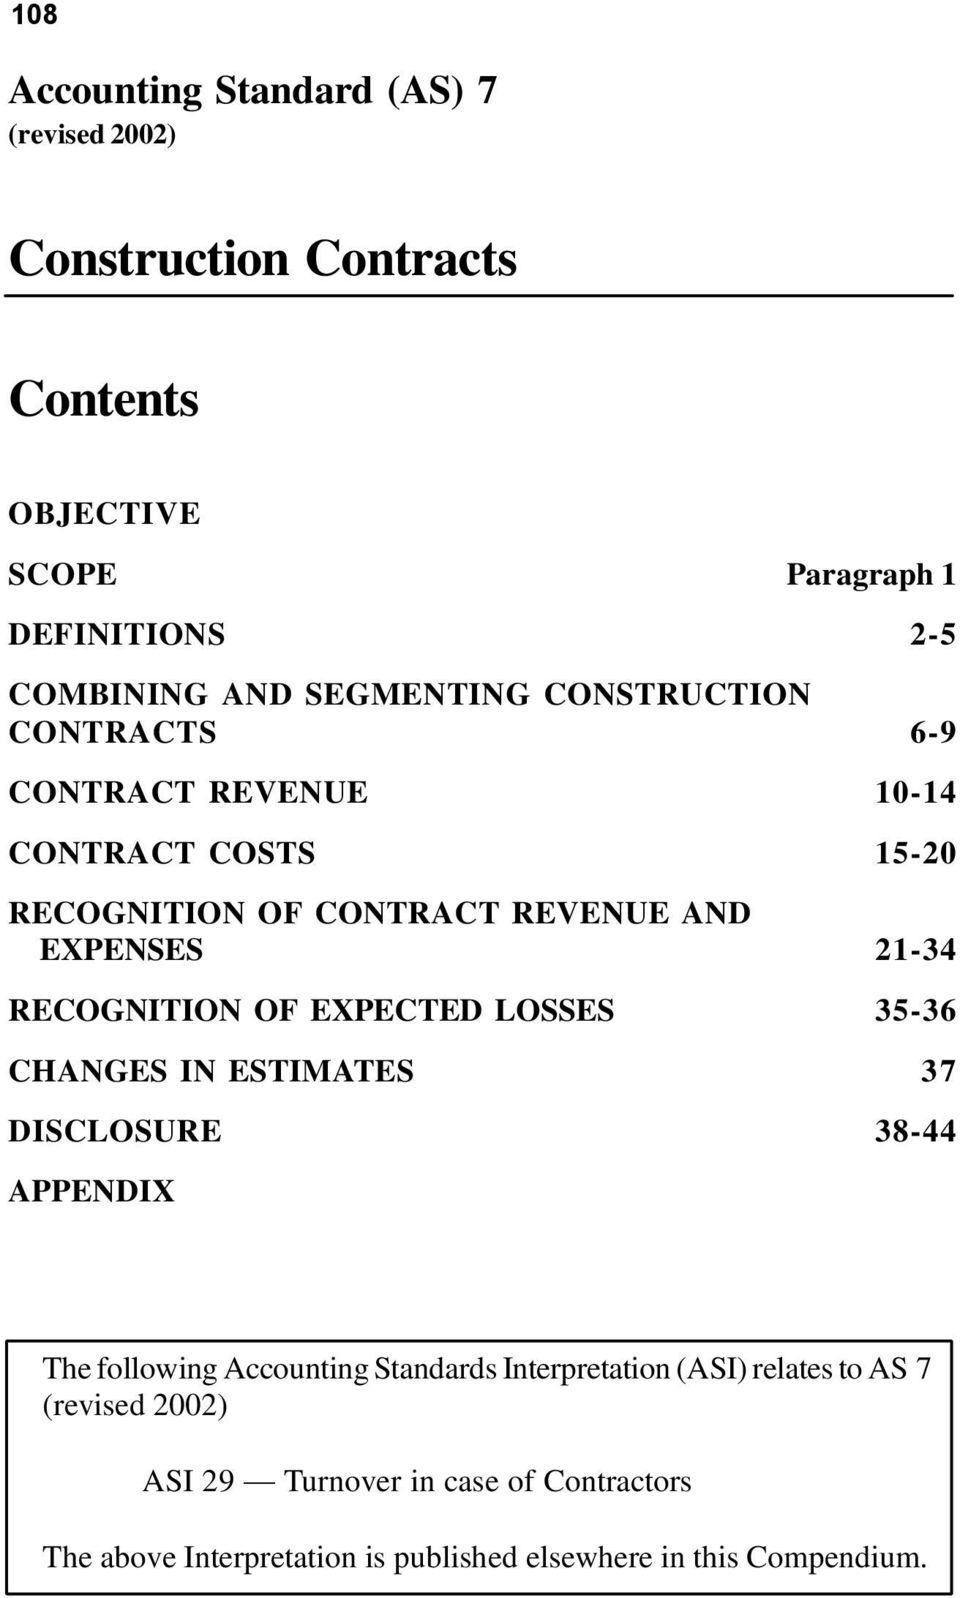 The following Accounting Standards Interpretation (ASI